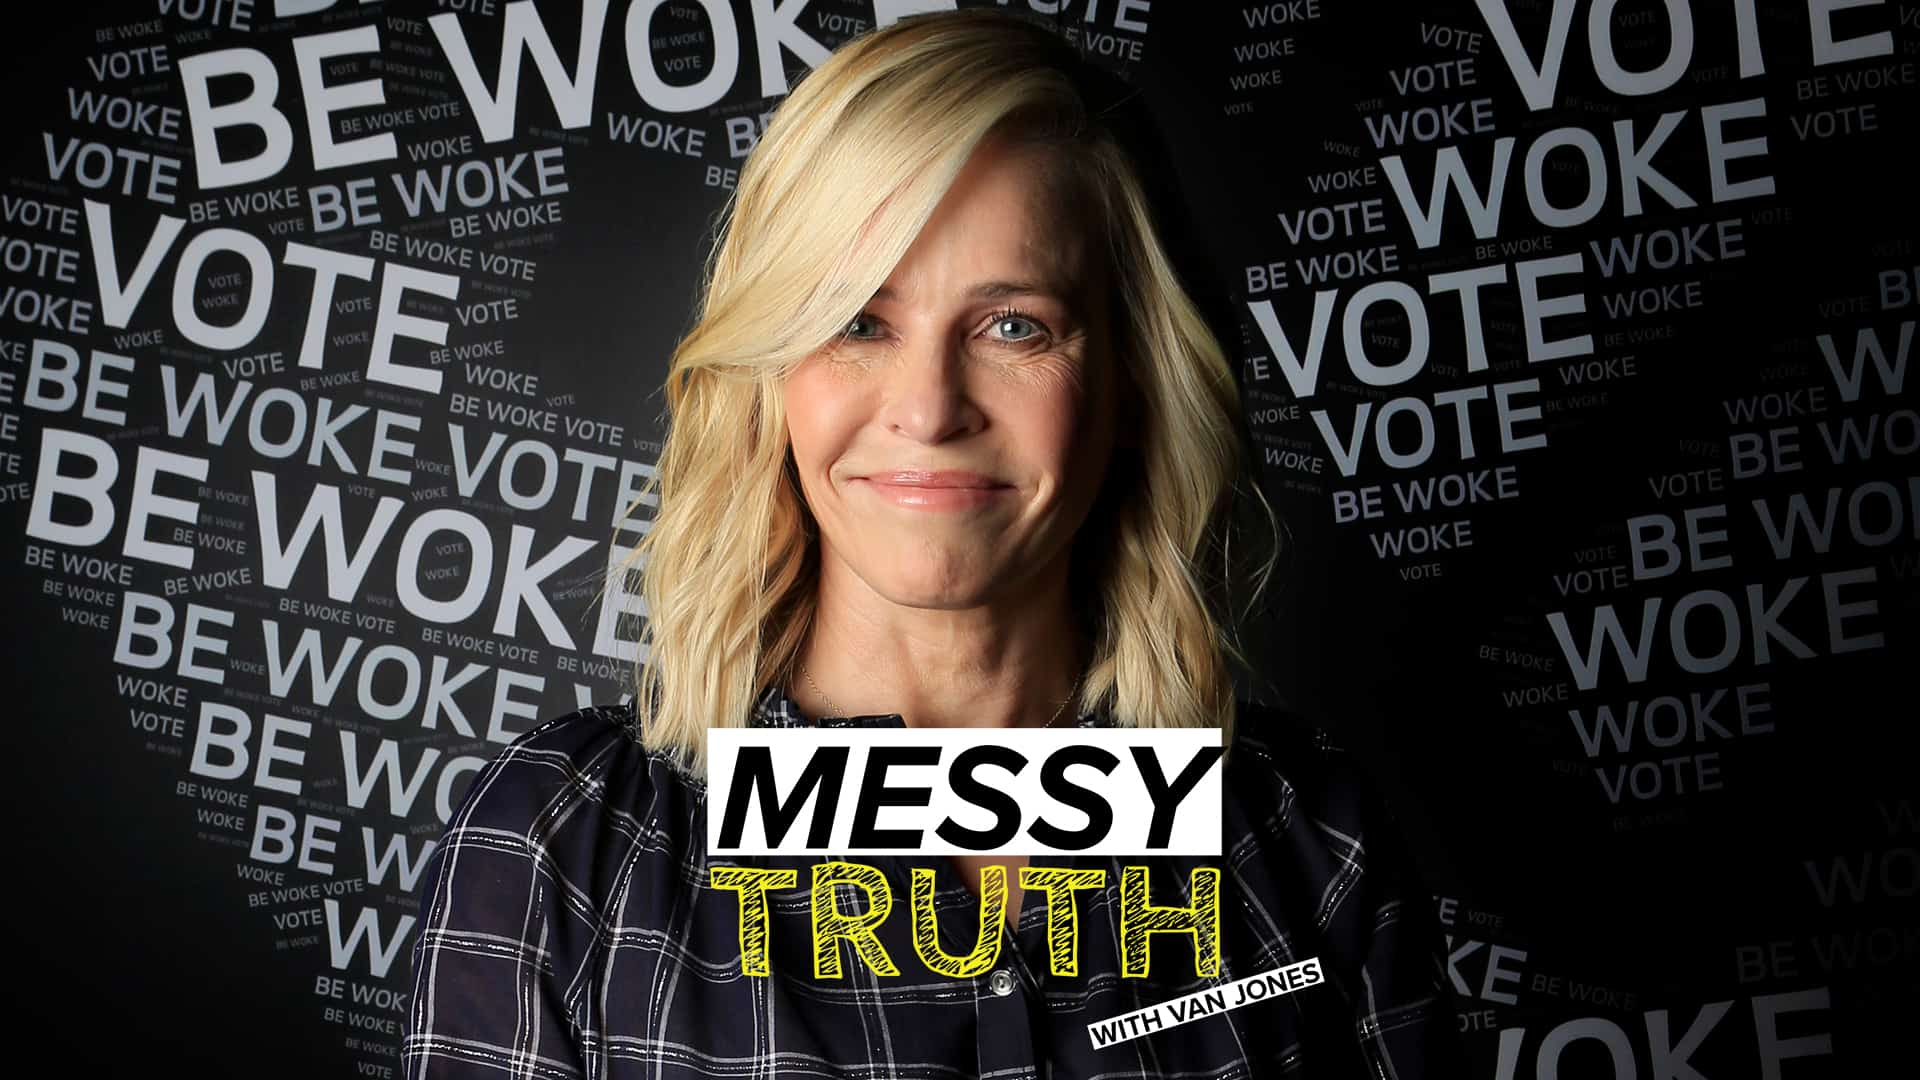 Be Woke presents Chelsea Handler